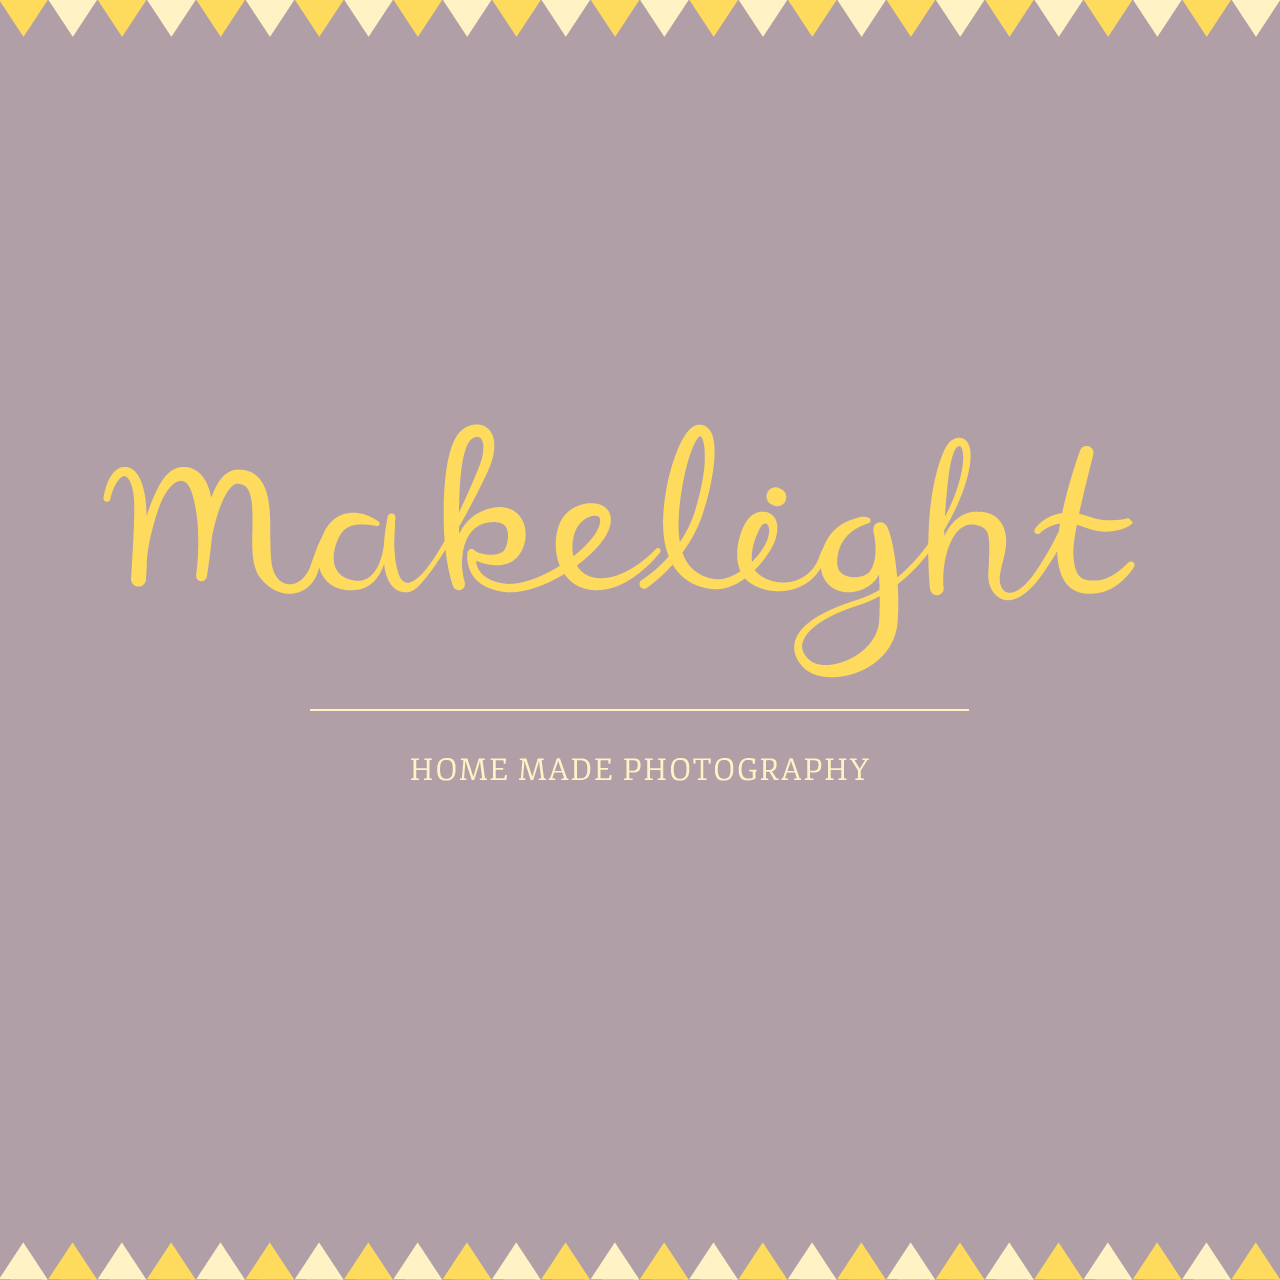 Makelight Home Made Photography